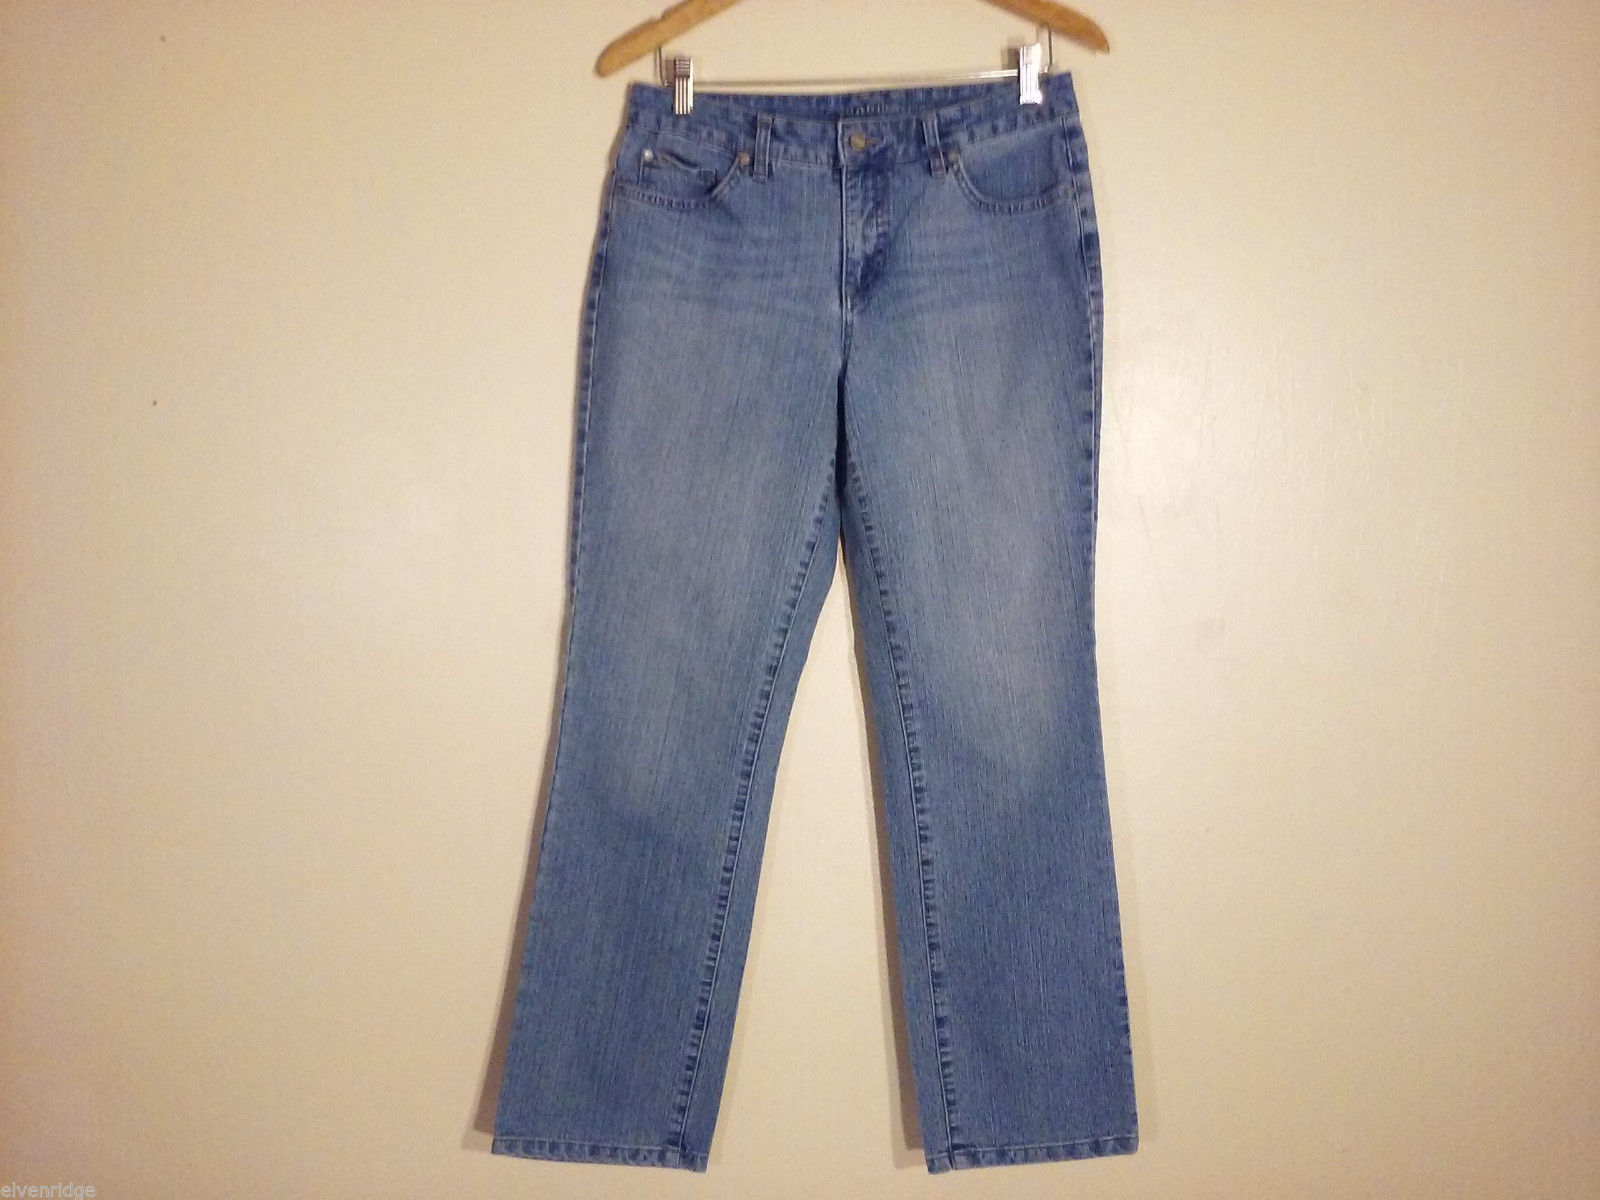 Sonoma Life + Styles Women's Size 10 Denim Jeans Straight Leg Medium Blue Wash